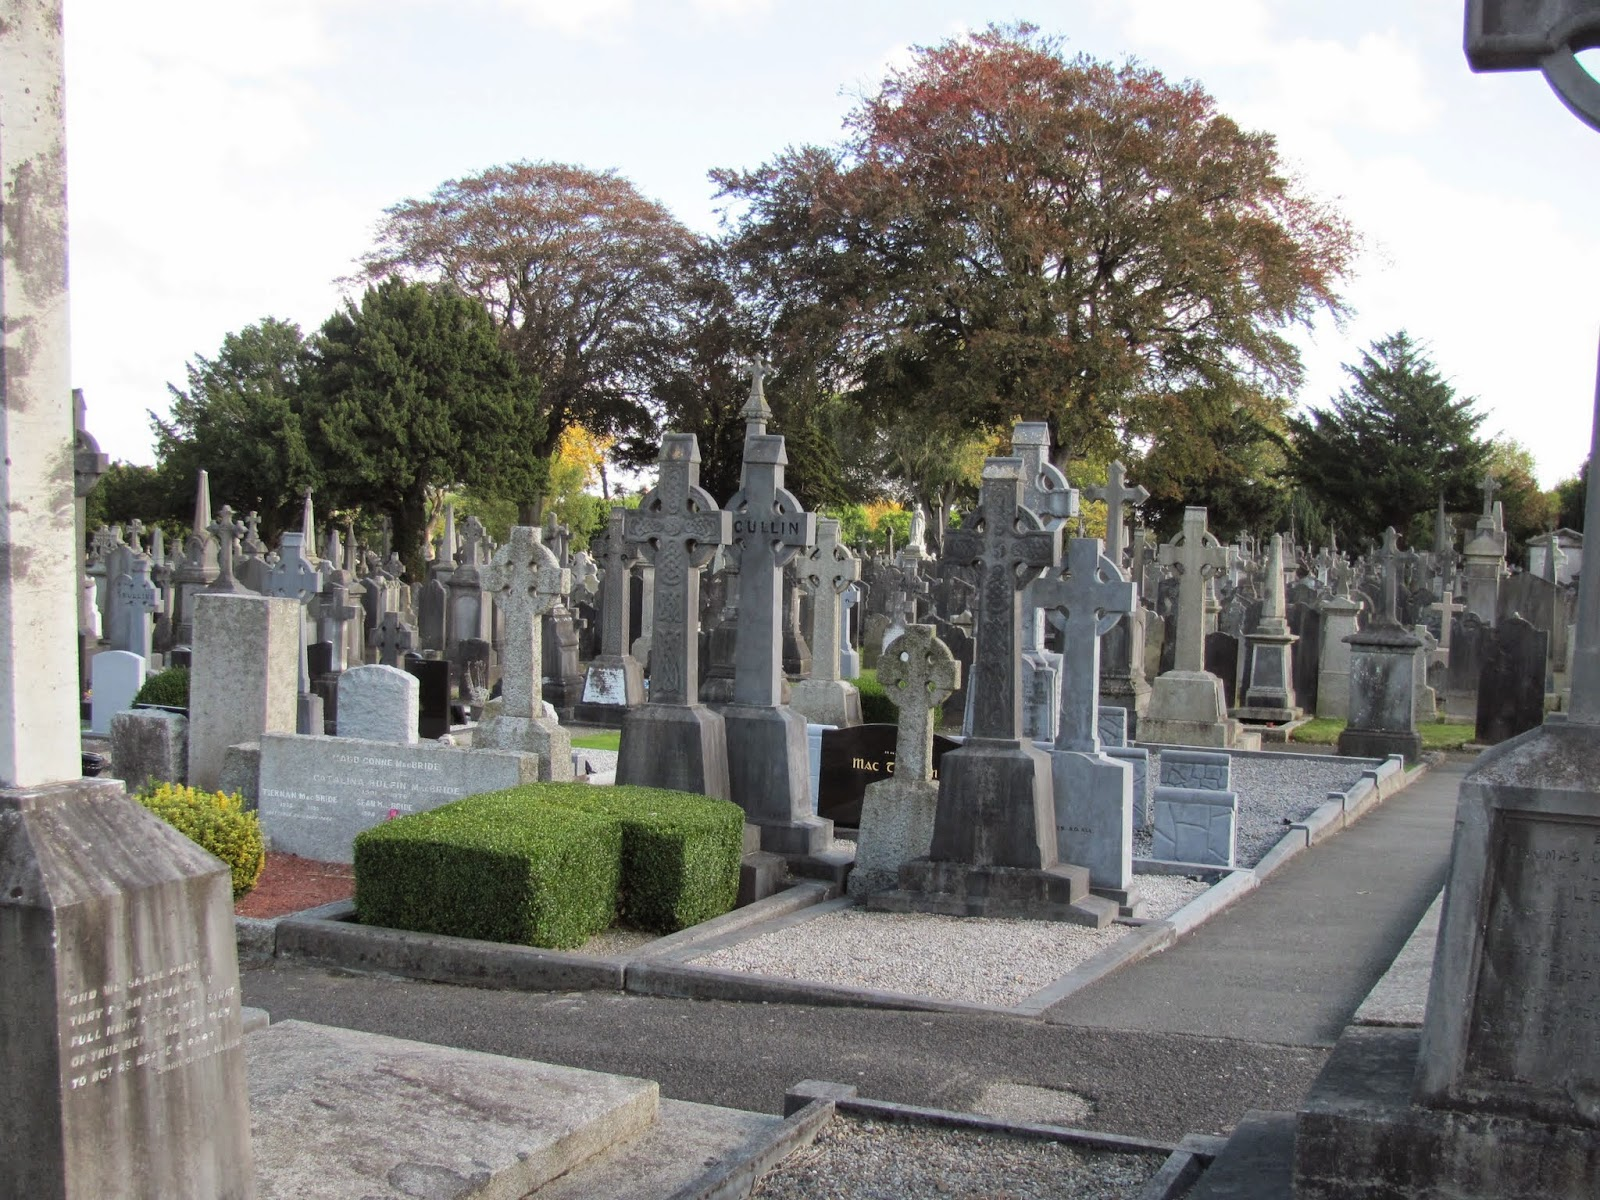 Graves at Glasnevin Cemetery Dublin